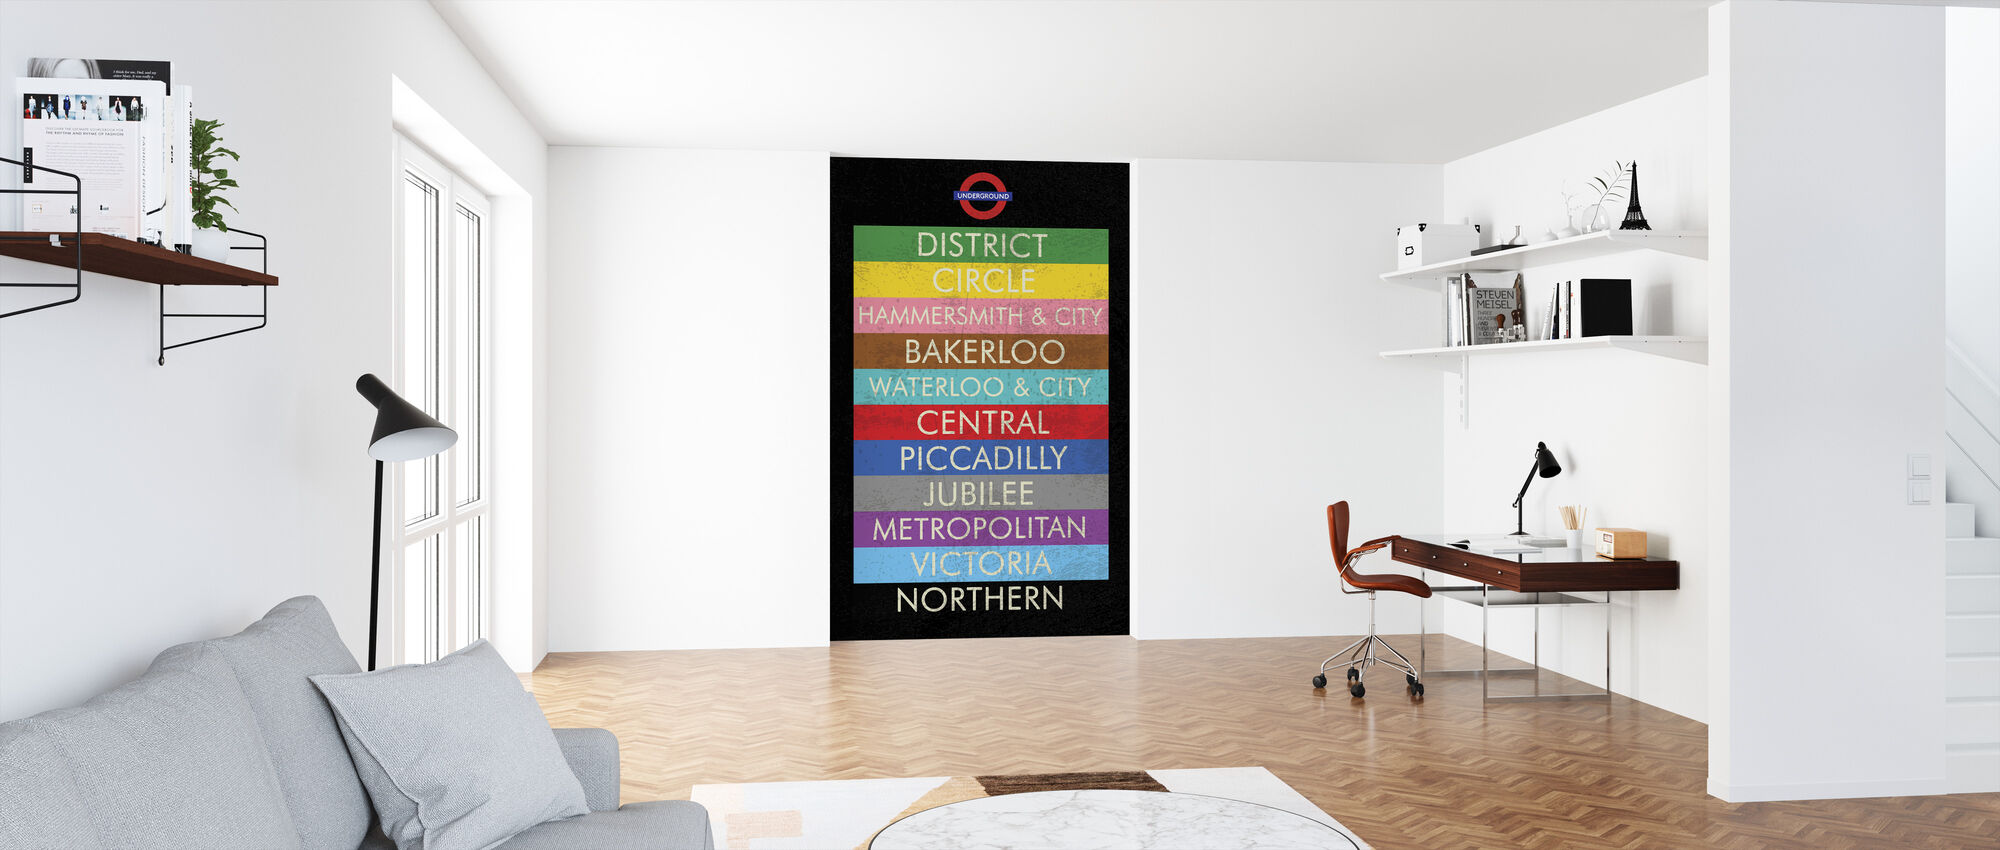 London Underground Sign - Wallpaper - Office